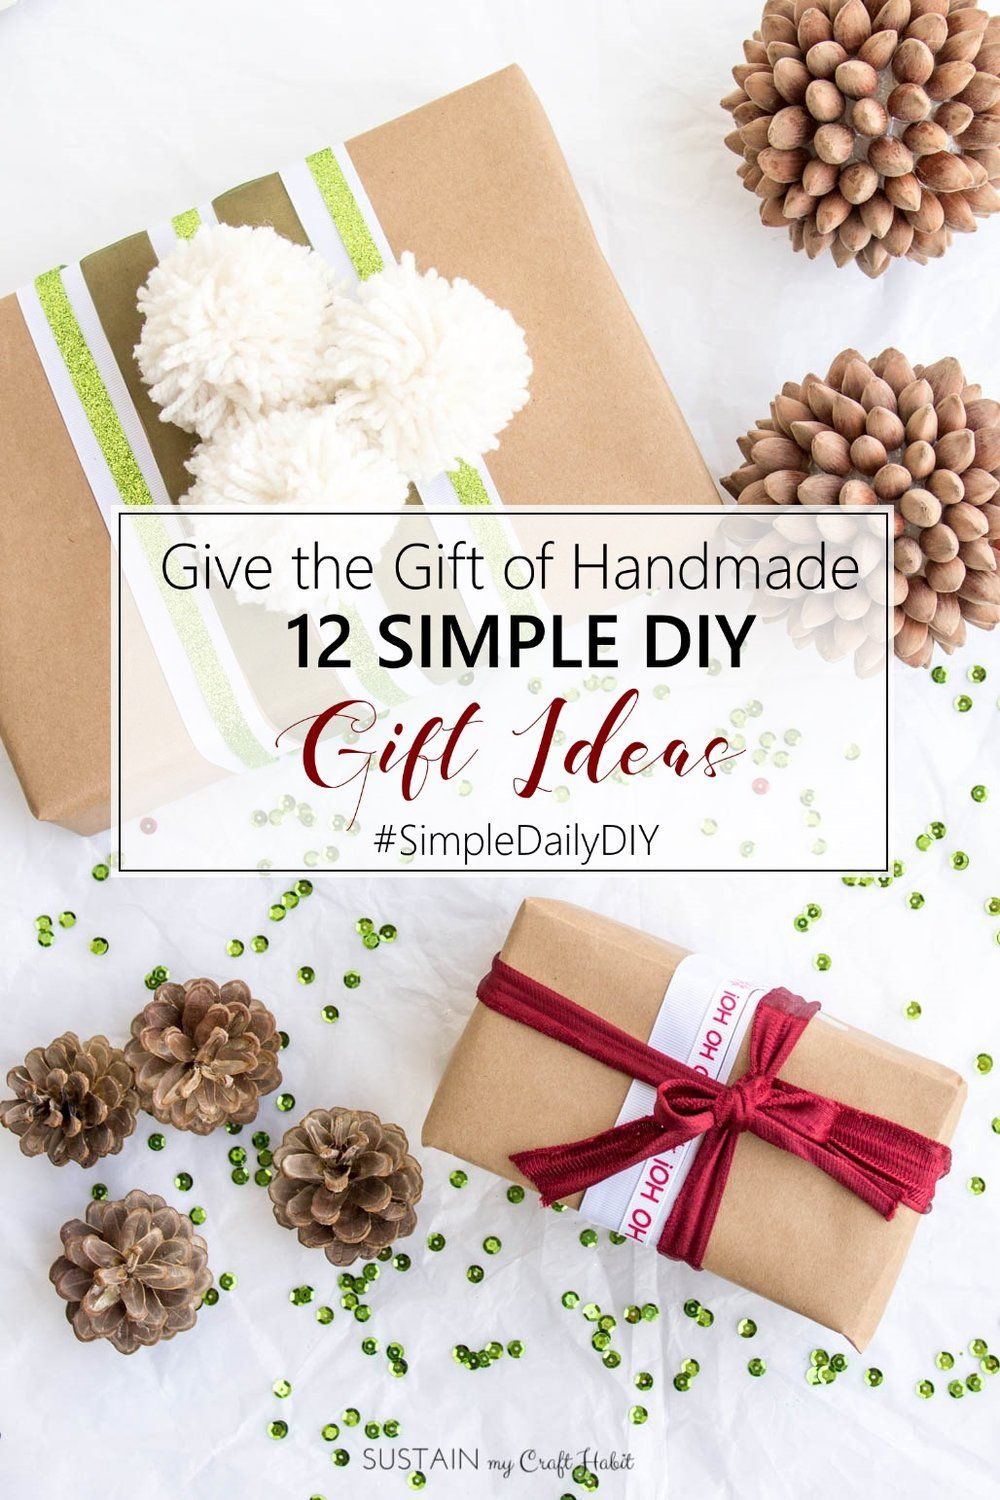 Handmade gift ideas for the holidays | Quick and easy DIY Christmas ...